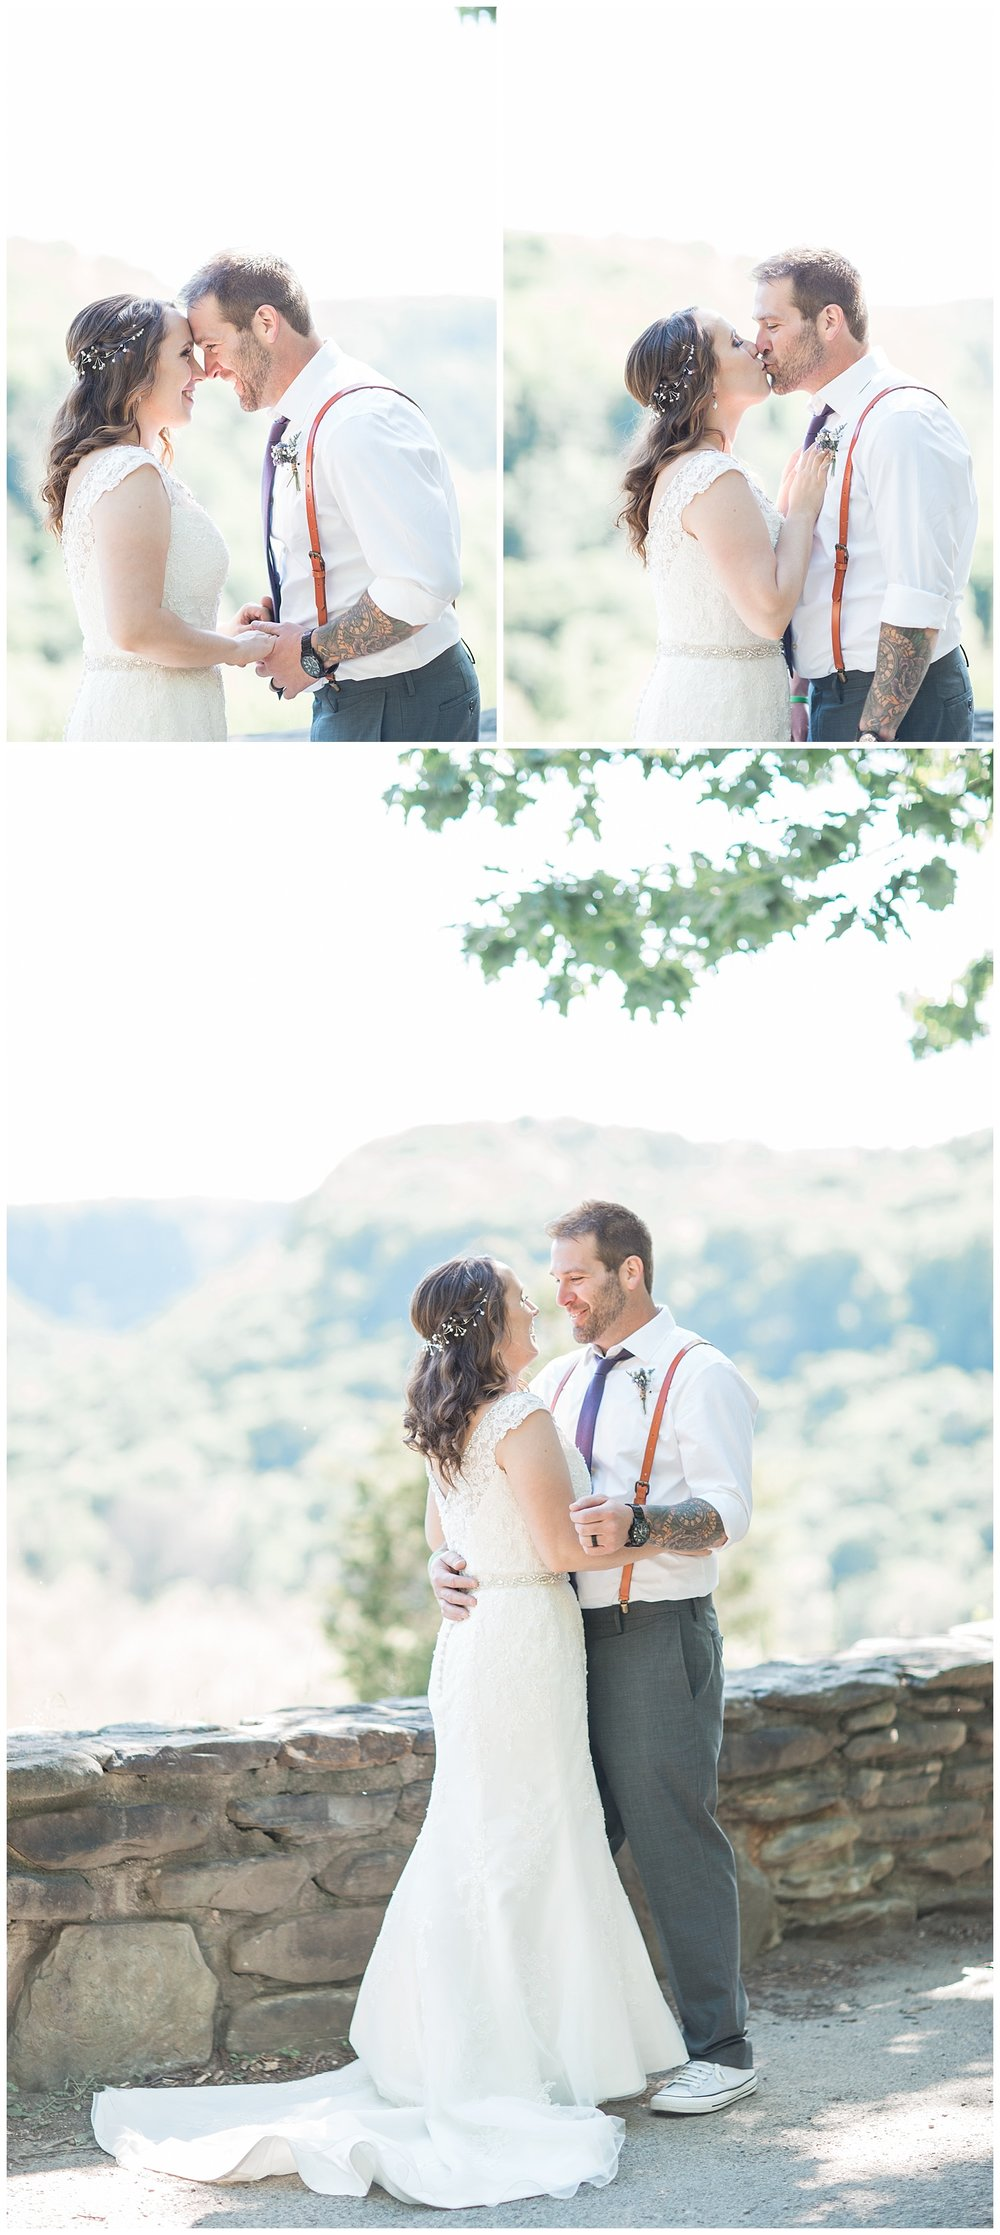 The Martin wedding - Lass & Beau-1284_Buffalo wedding photography.jpg